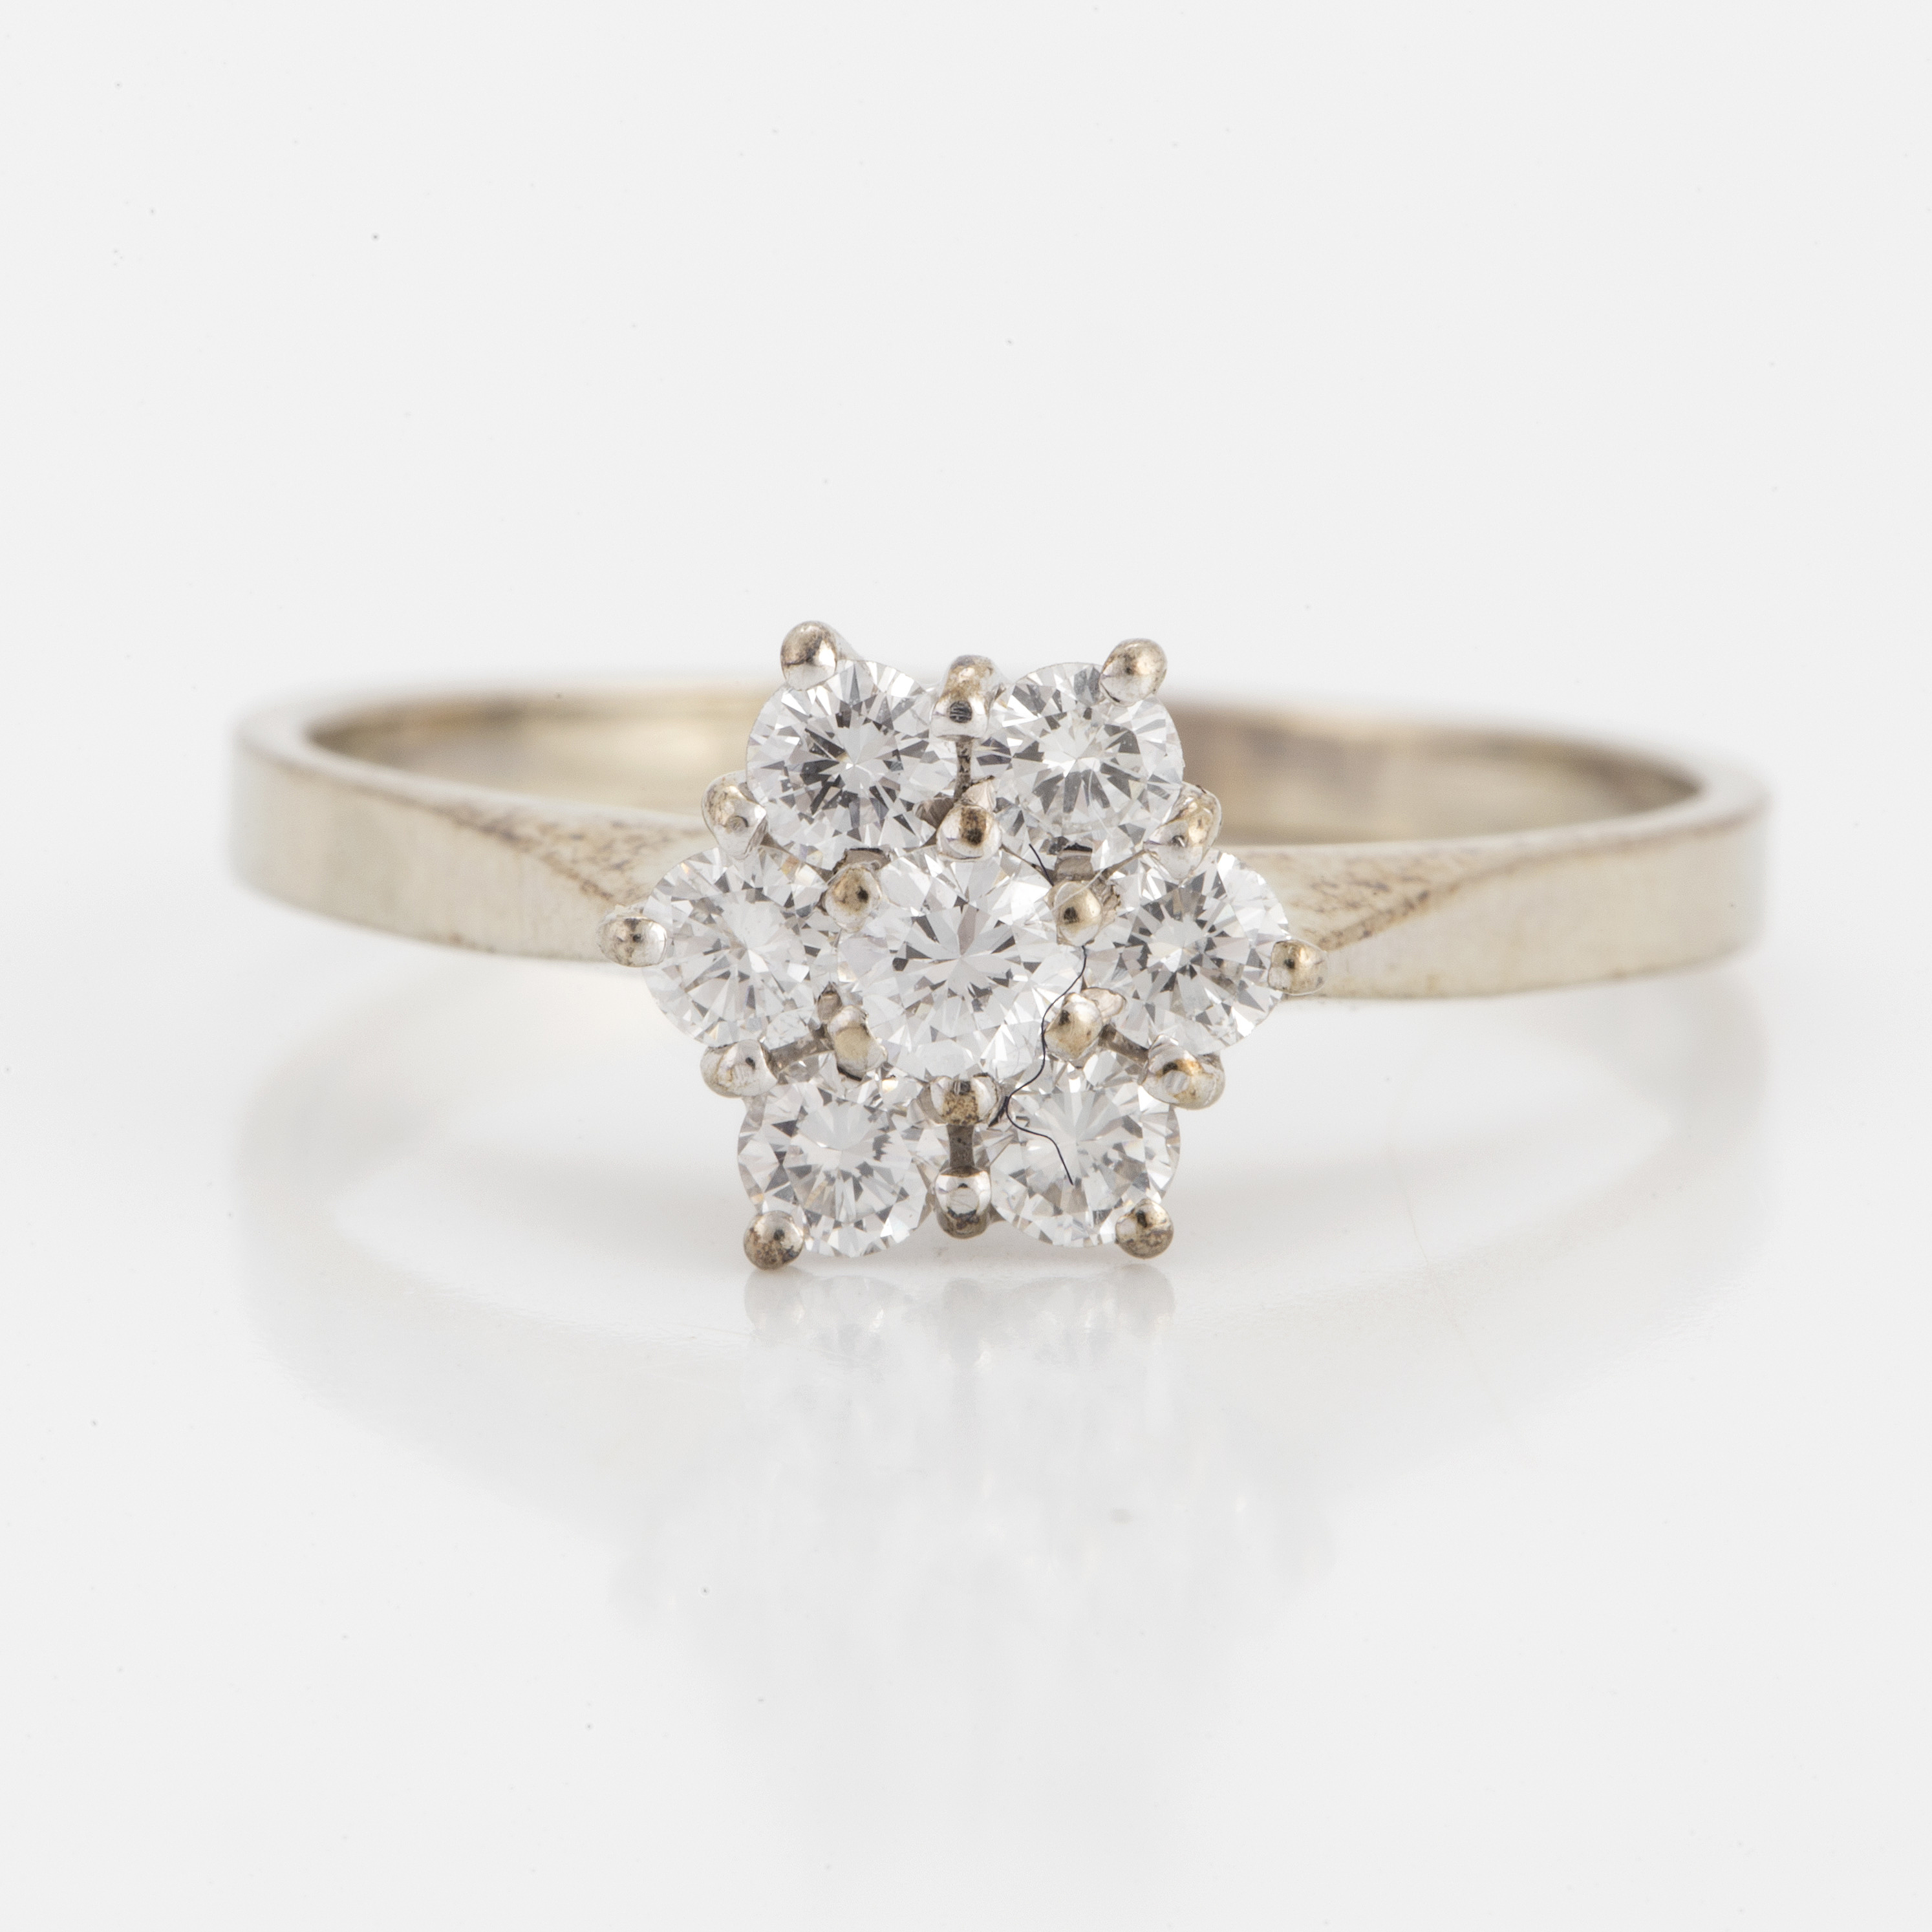 CLUSTER RING, 18K white gold with 7 diamonds 0 54 cts, according to